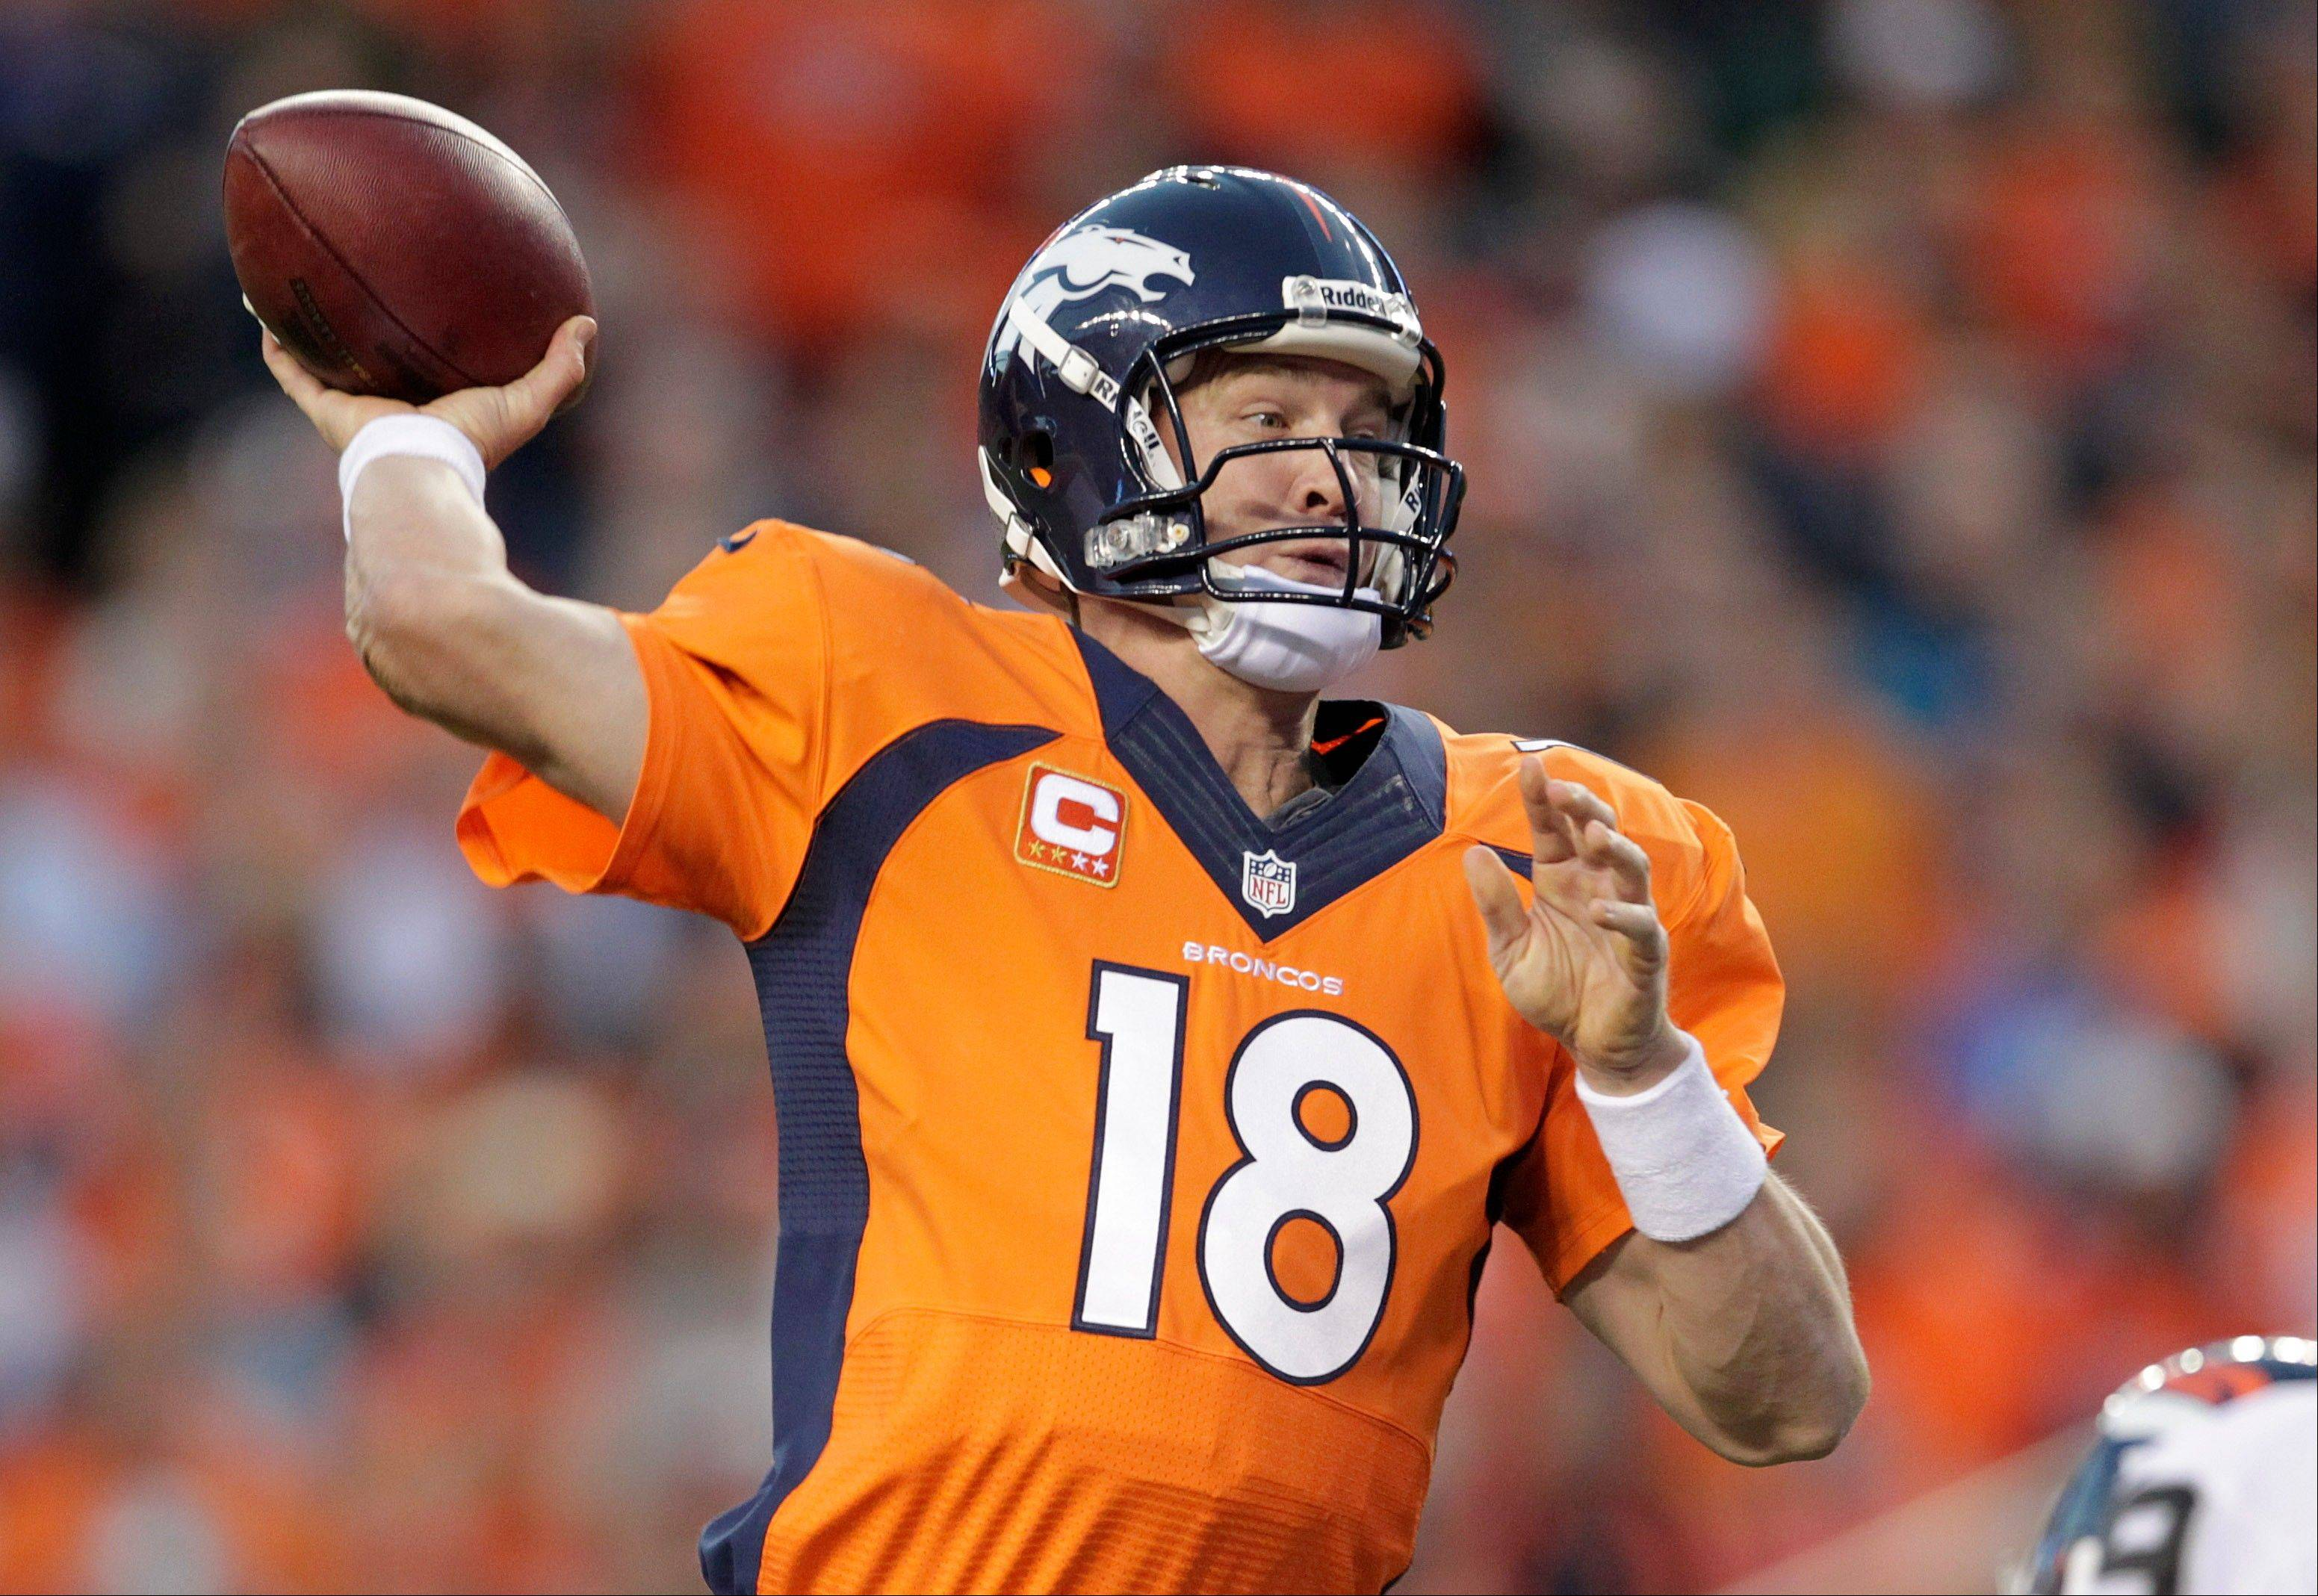 Broncos quarterback Peyton Manning has thrown 12 touchdown passes and no interceptions through the first three games this season.